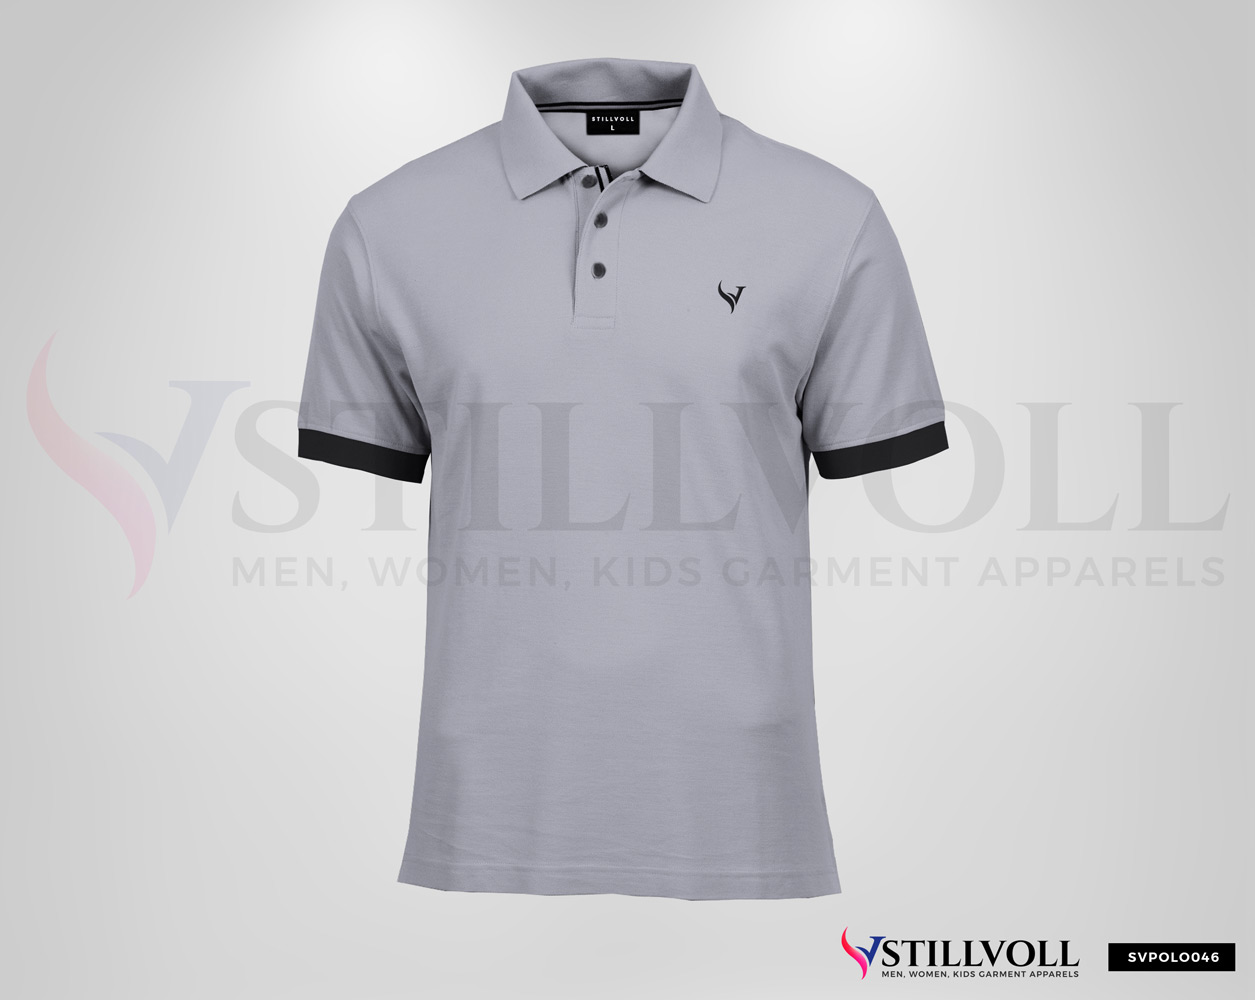 590a29f2 Polo T Shirts Wholesale India - DREAMWORKS